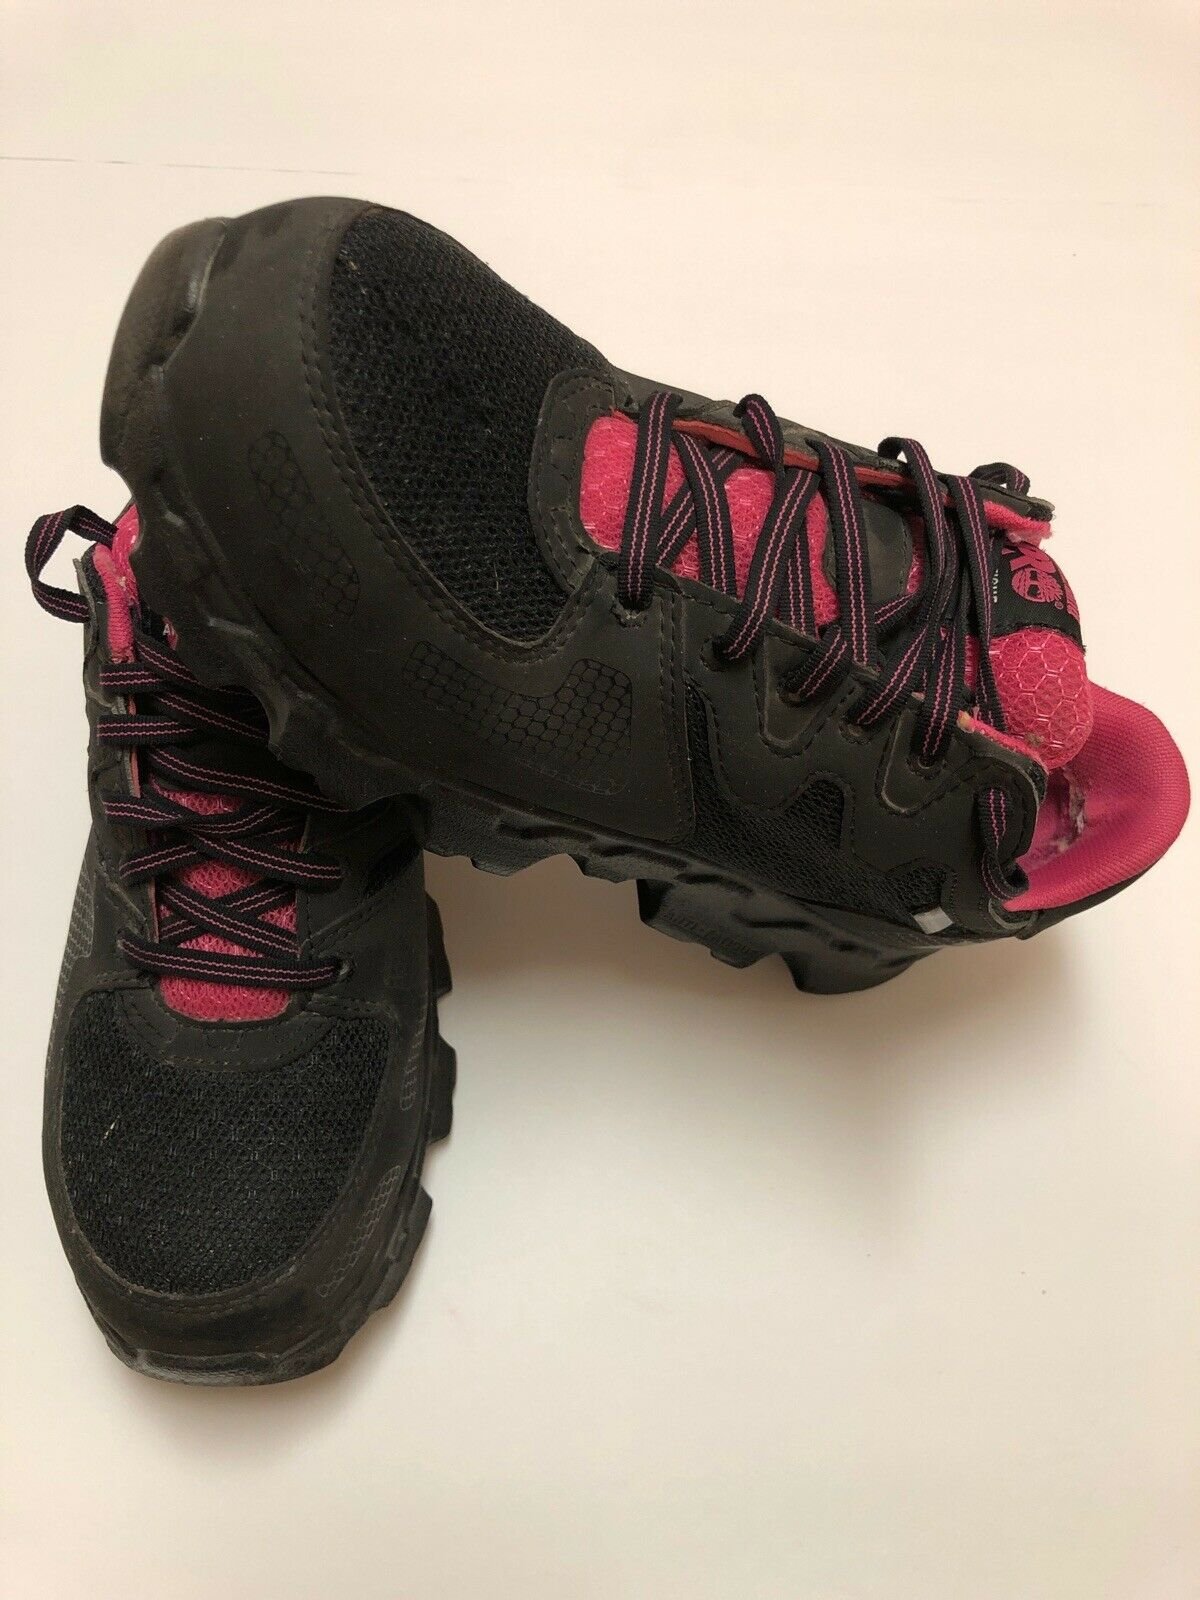 Timberland Pro 92669 Pink ESD Alloy Safety Toe Work Shoes Women's 7.5M